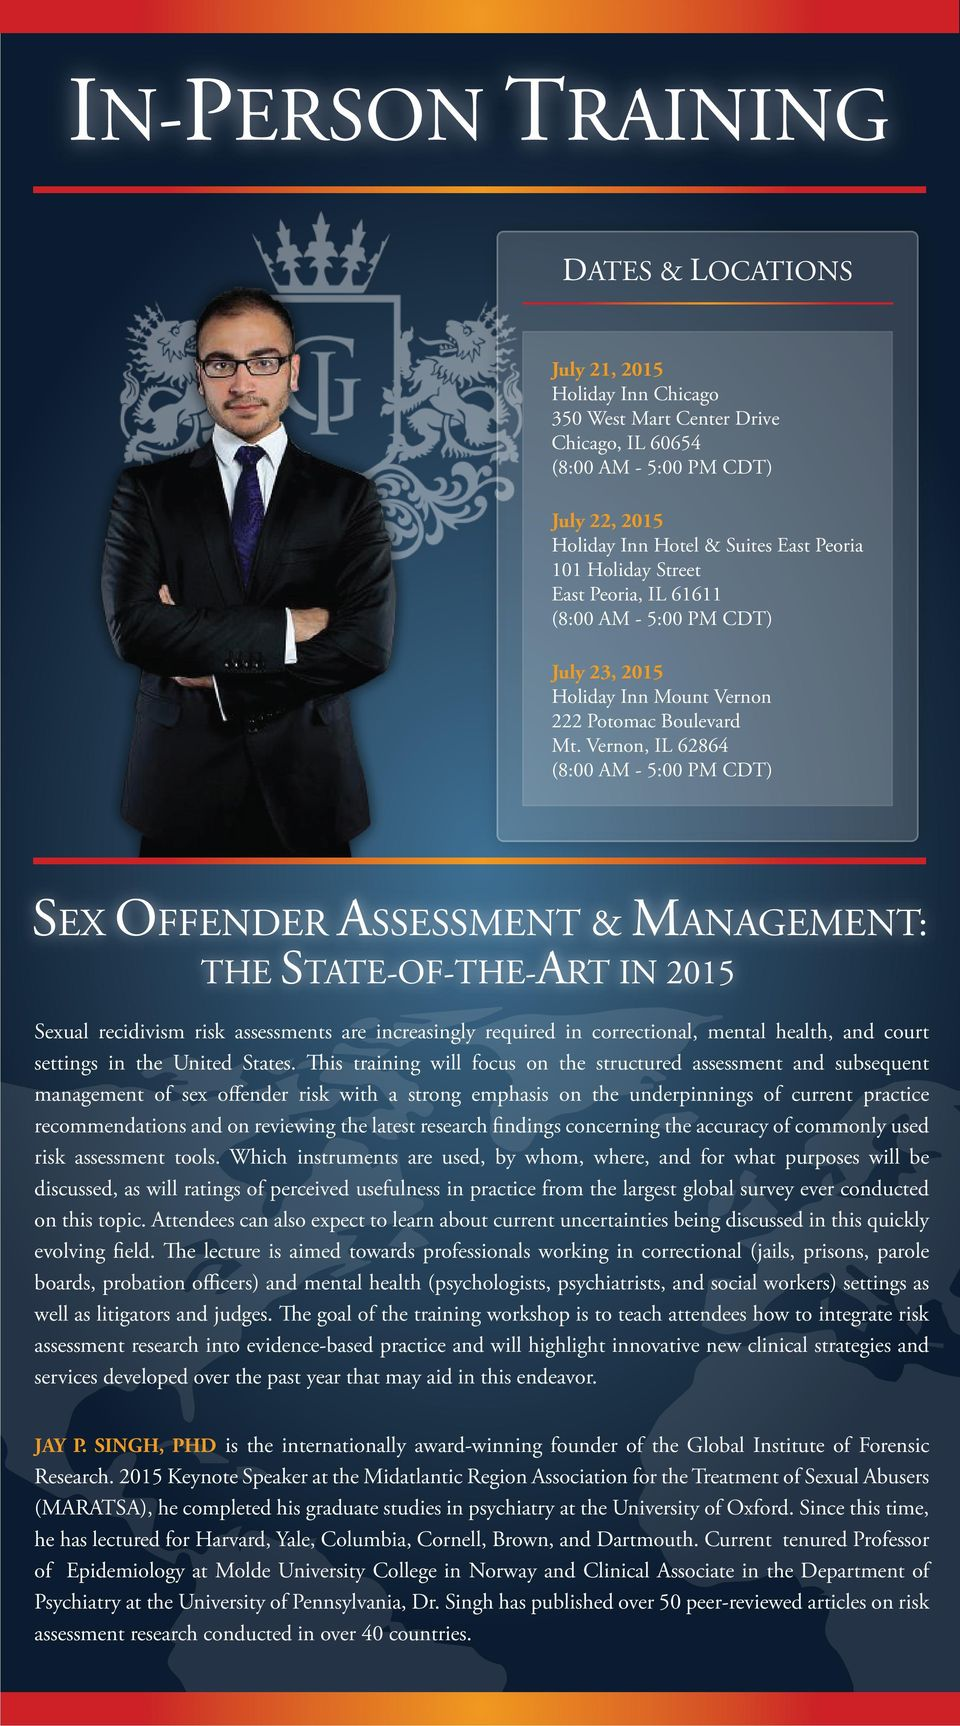 Vernon, IL 62864 (8:00 AM - 5:00 PM CDT) SEX OFFENDER ASSESSMENT & MANAGEMENT: THE STATE-OF-THE-ART IN 2015 Sexual recidivism risk assessments are increasingly required in correctional, mental